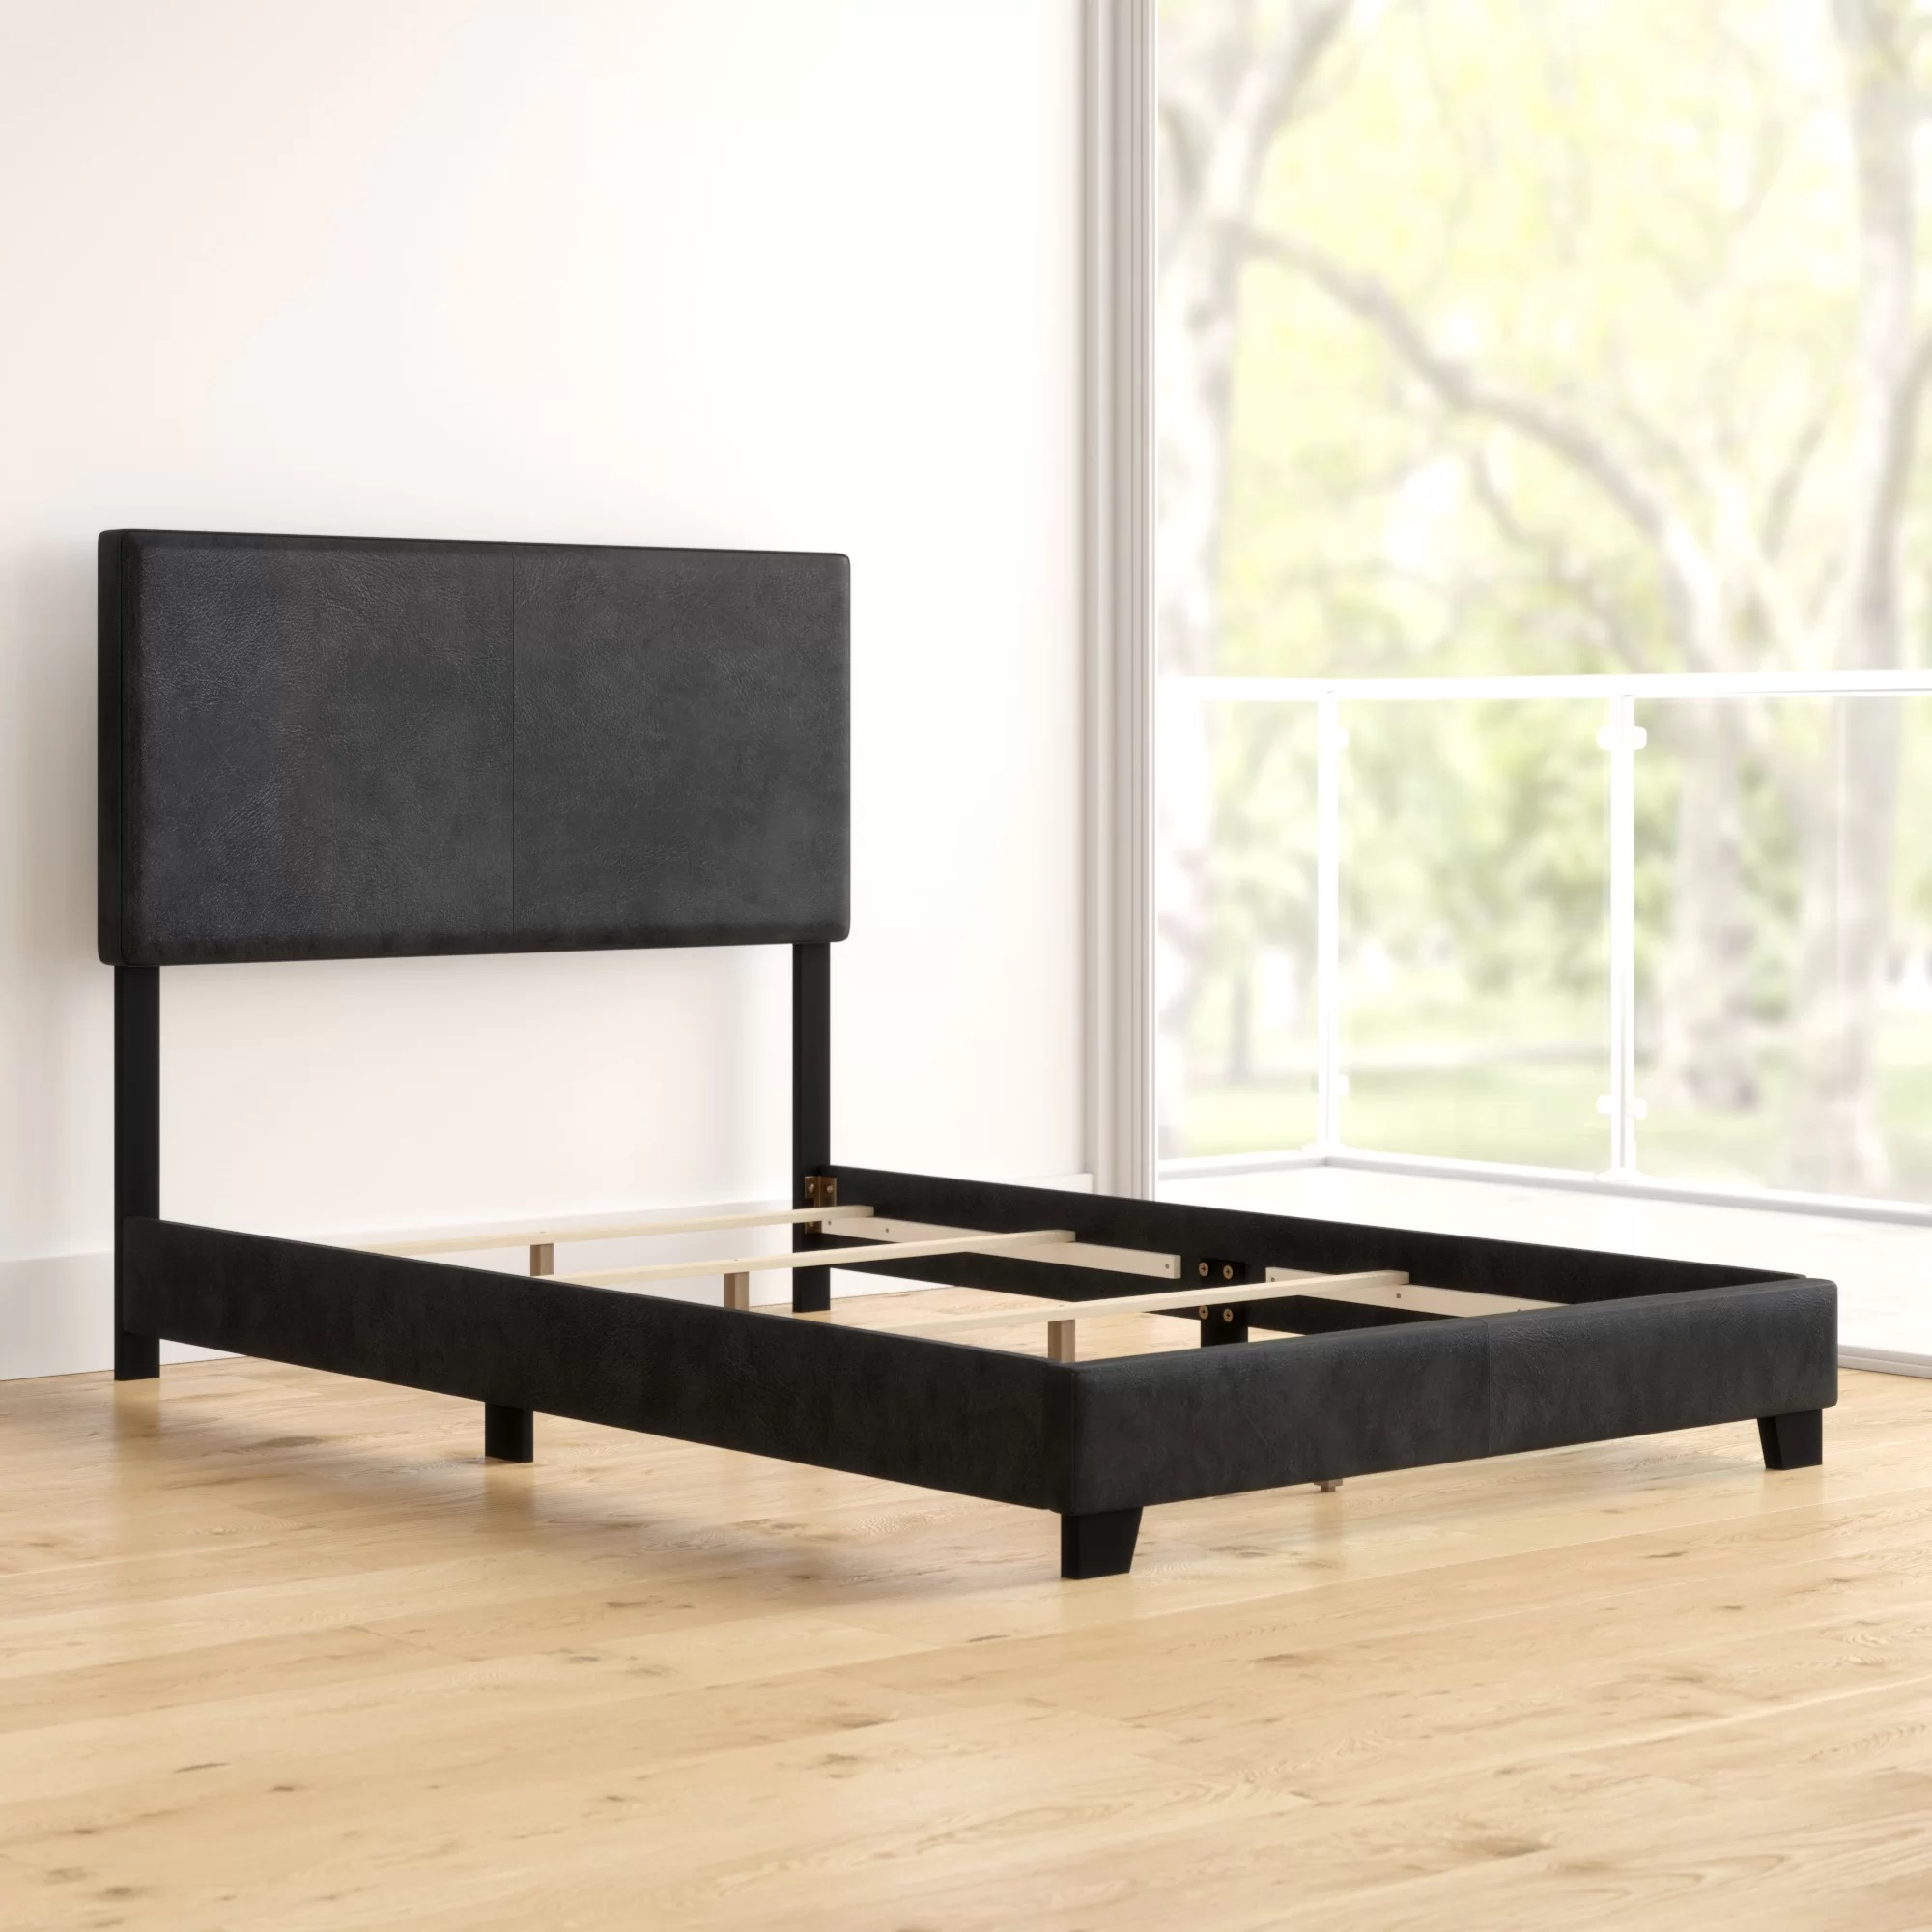 Black Queen Size Beds Frames Free Shipping Over 35 Wayfair